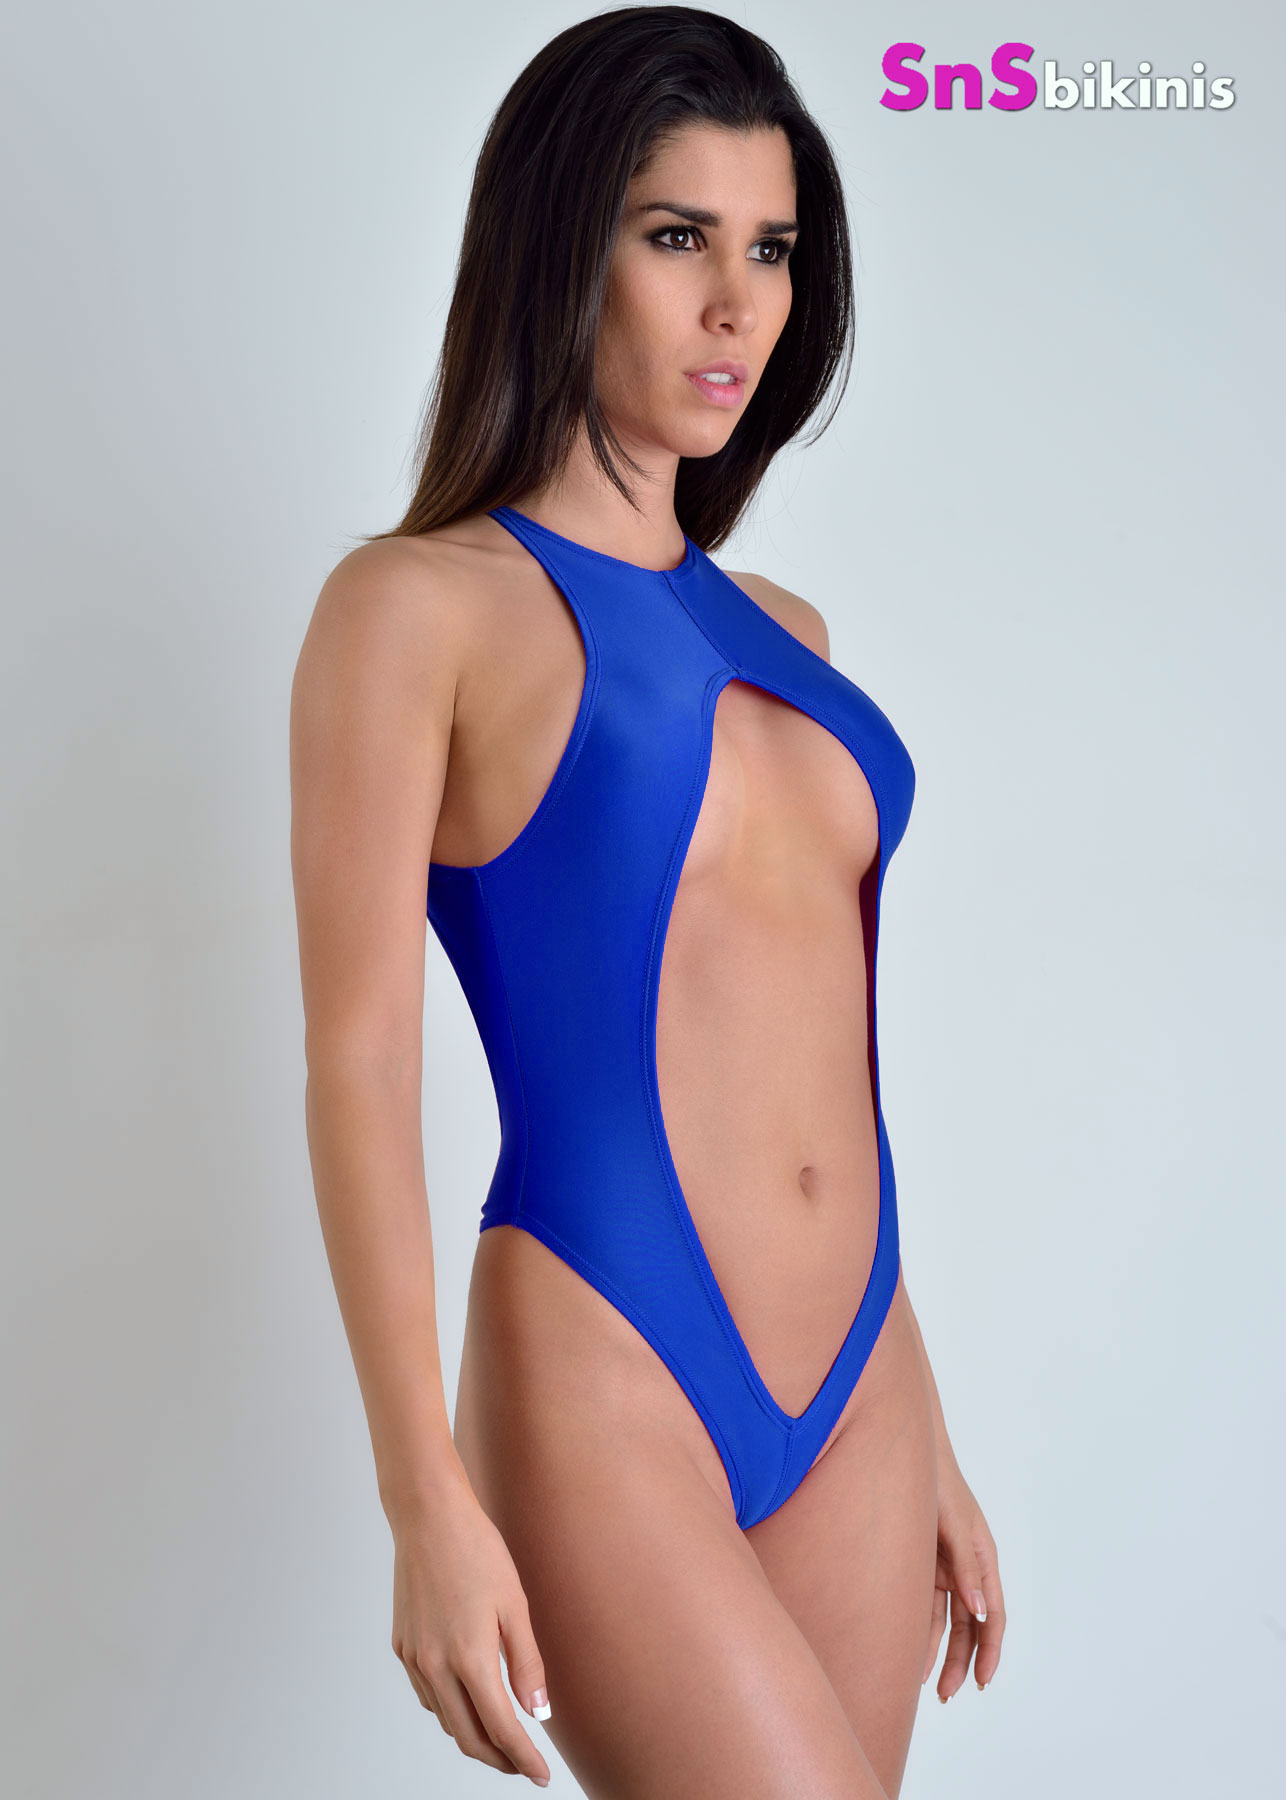 NAOMI Hot  Beautiful Swimsuit JMOT002UU  6500  SnSbikinis Online store  Sexy and Extreme